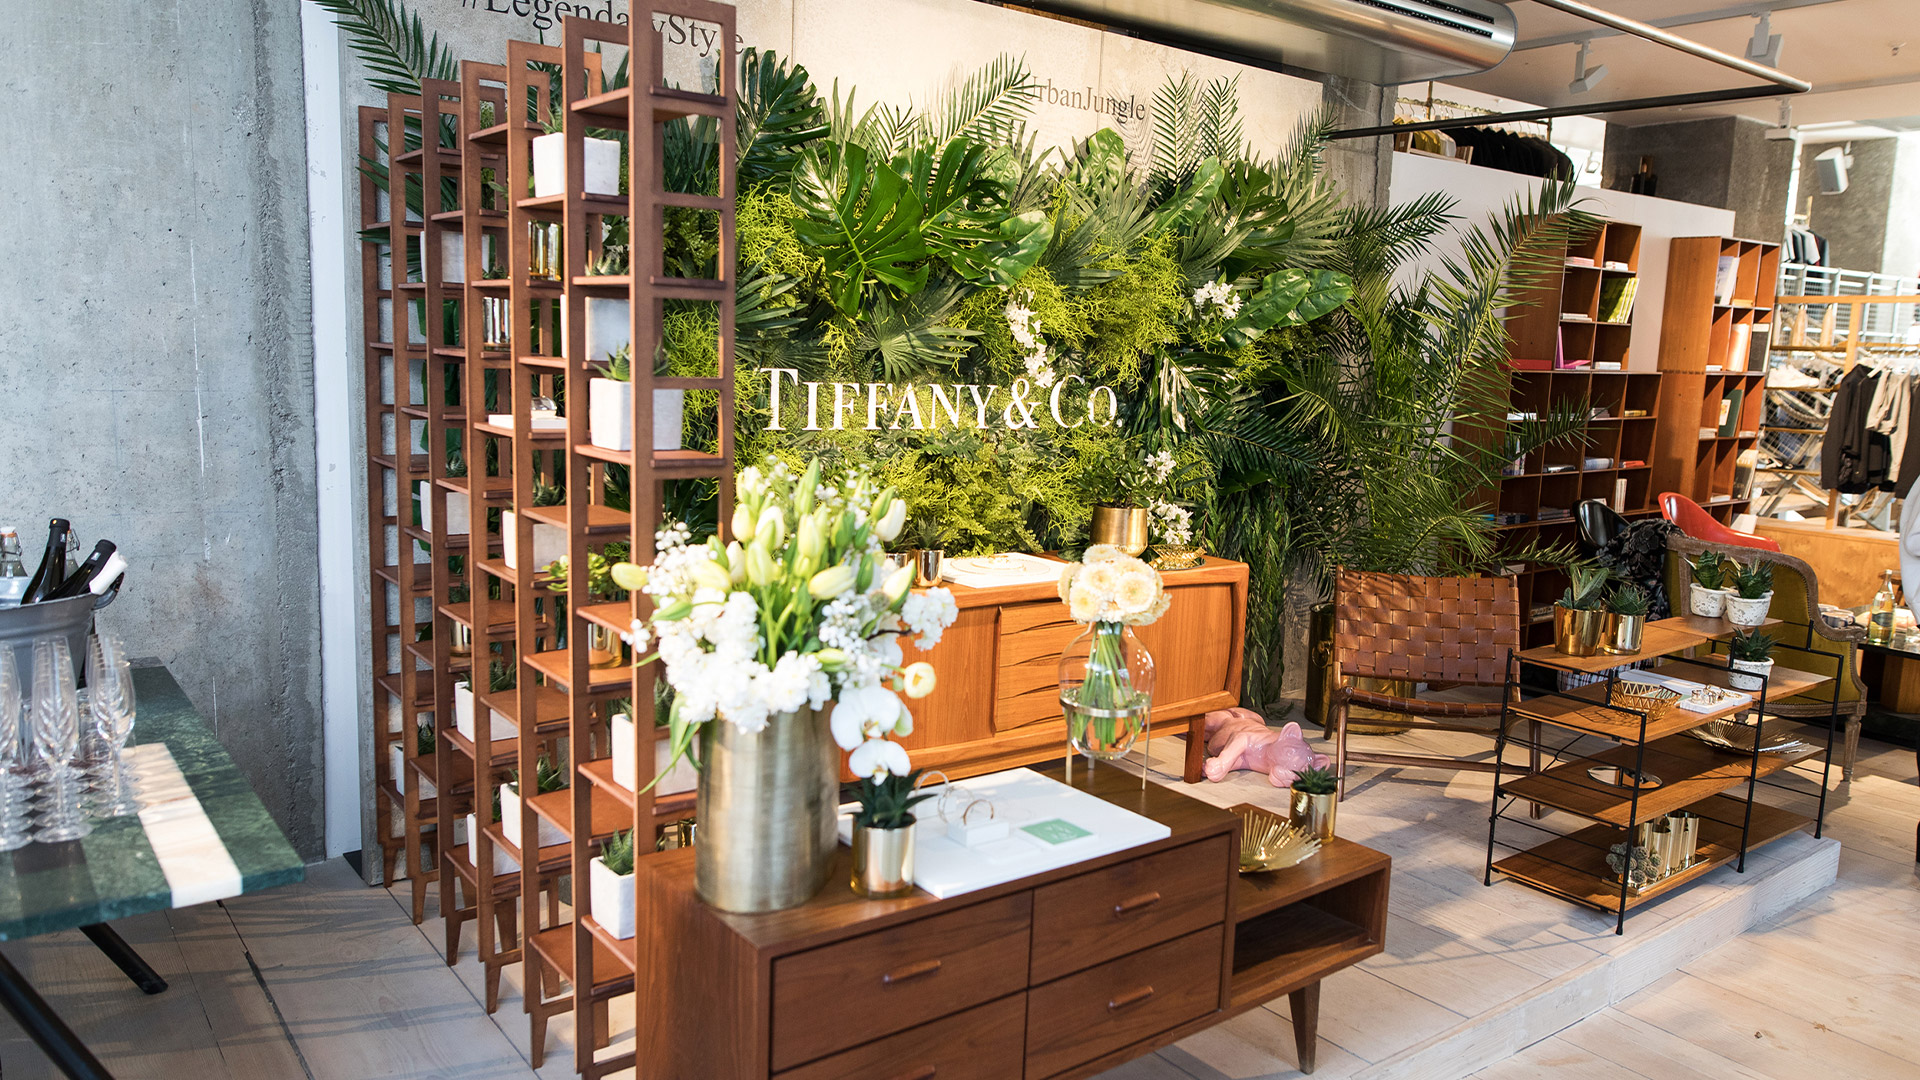 LIGANOVA | Tiffany & Co. | Brand Experience – Pop-Up Space | Insights